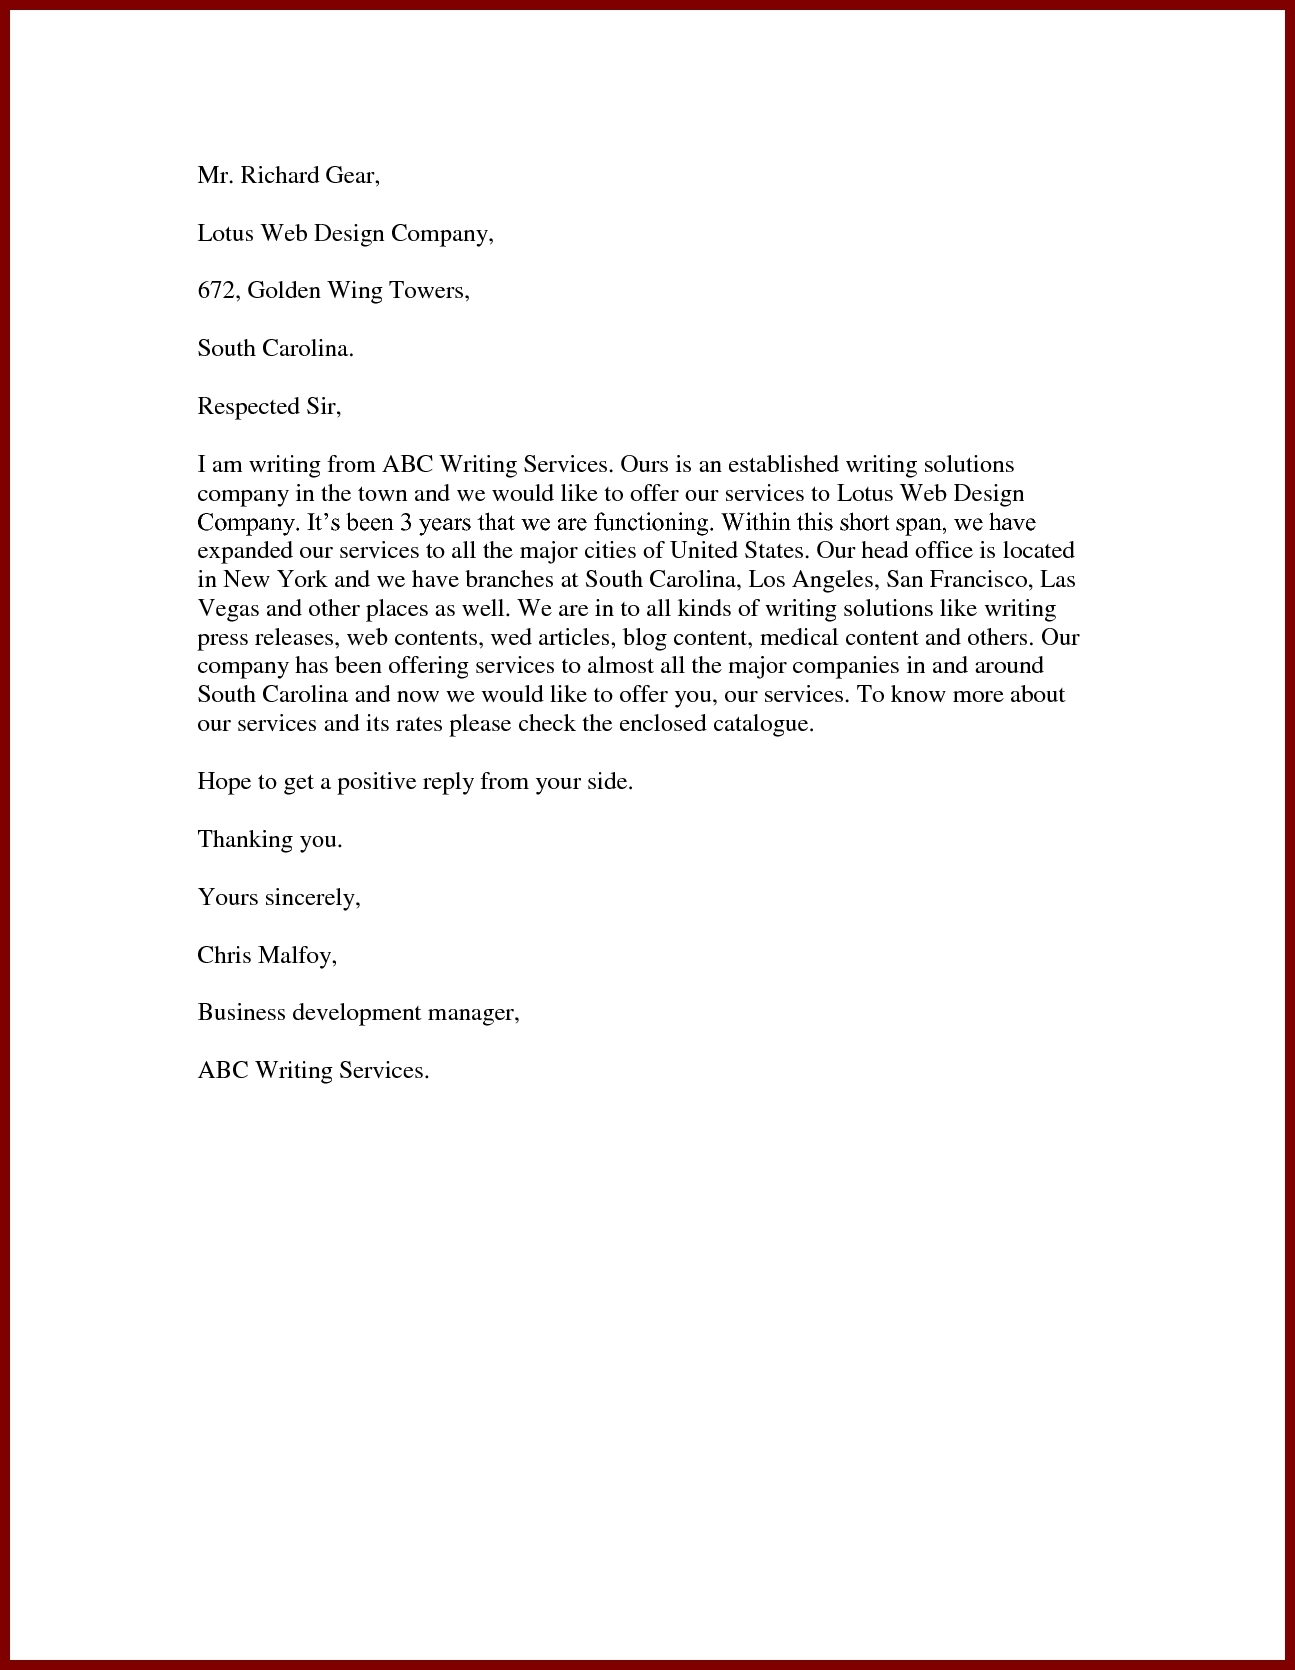 Sample proposal letter for services 15 offer sendletters famous or